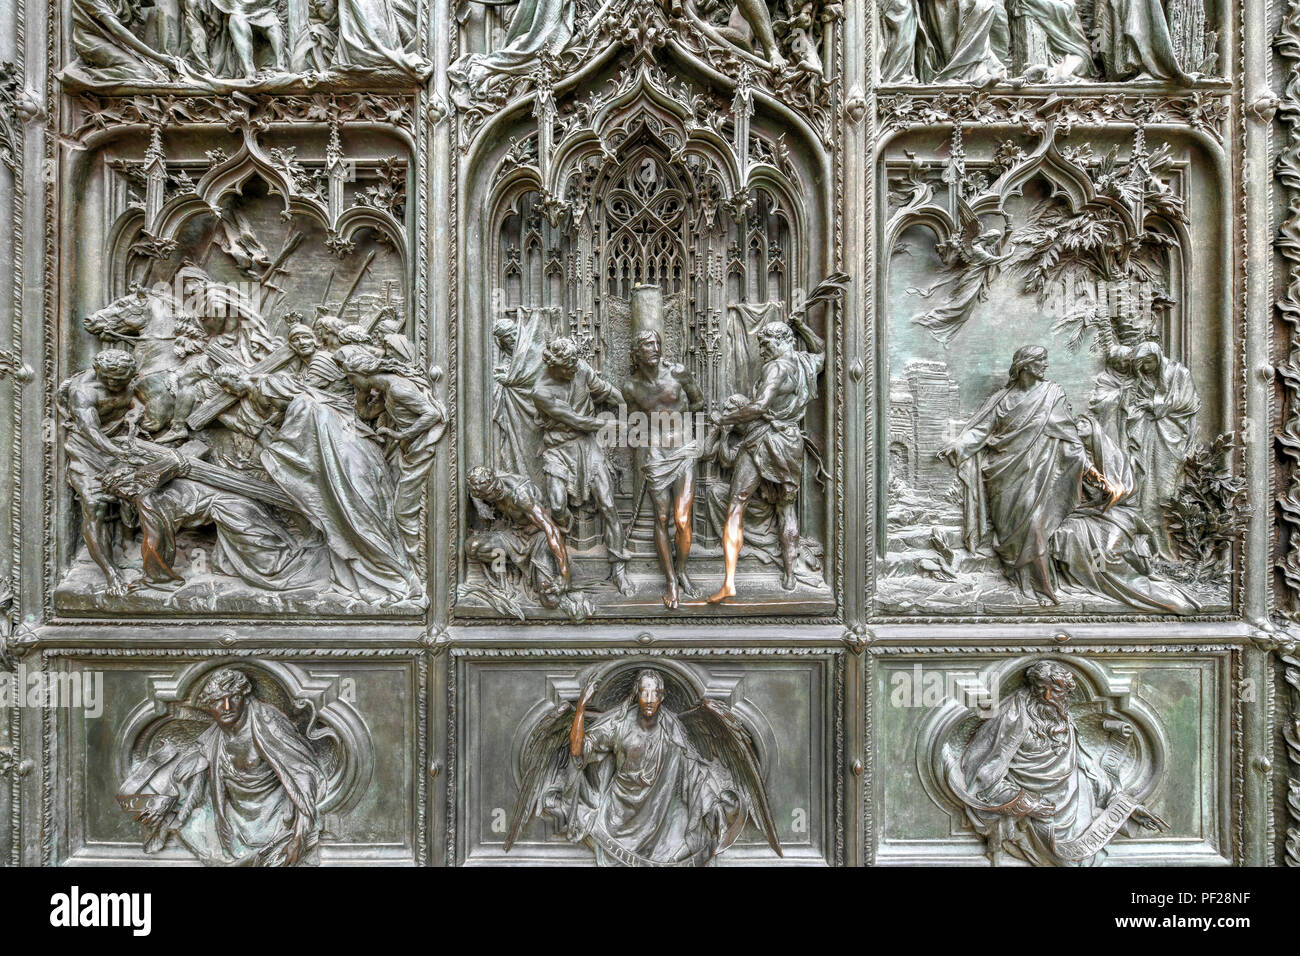 Door of the Milan Cathedral, Cathedral of the Nativity of the Virgin Mary - Cathedral in Milan, is located in the historic center of the city and is i - Stock Image